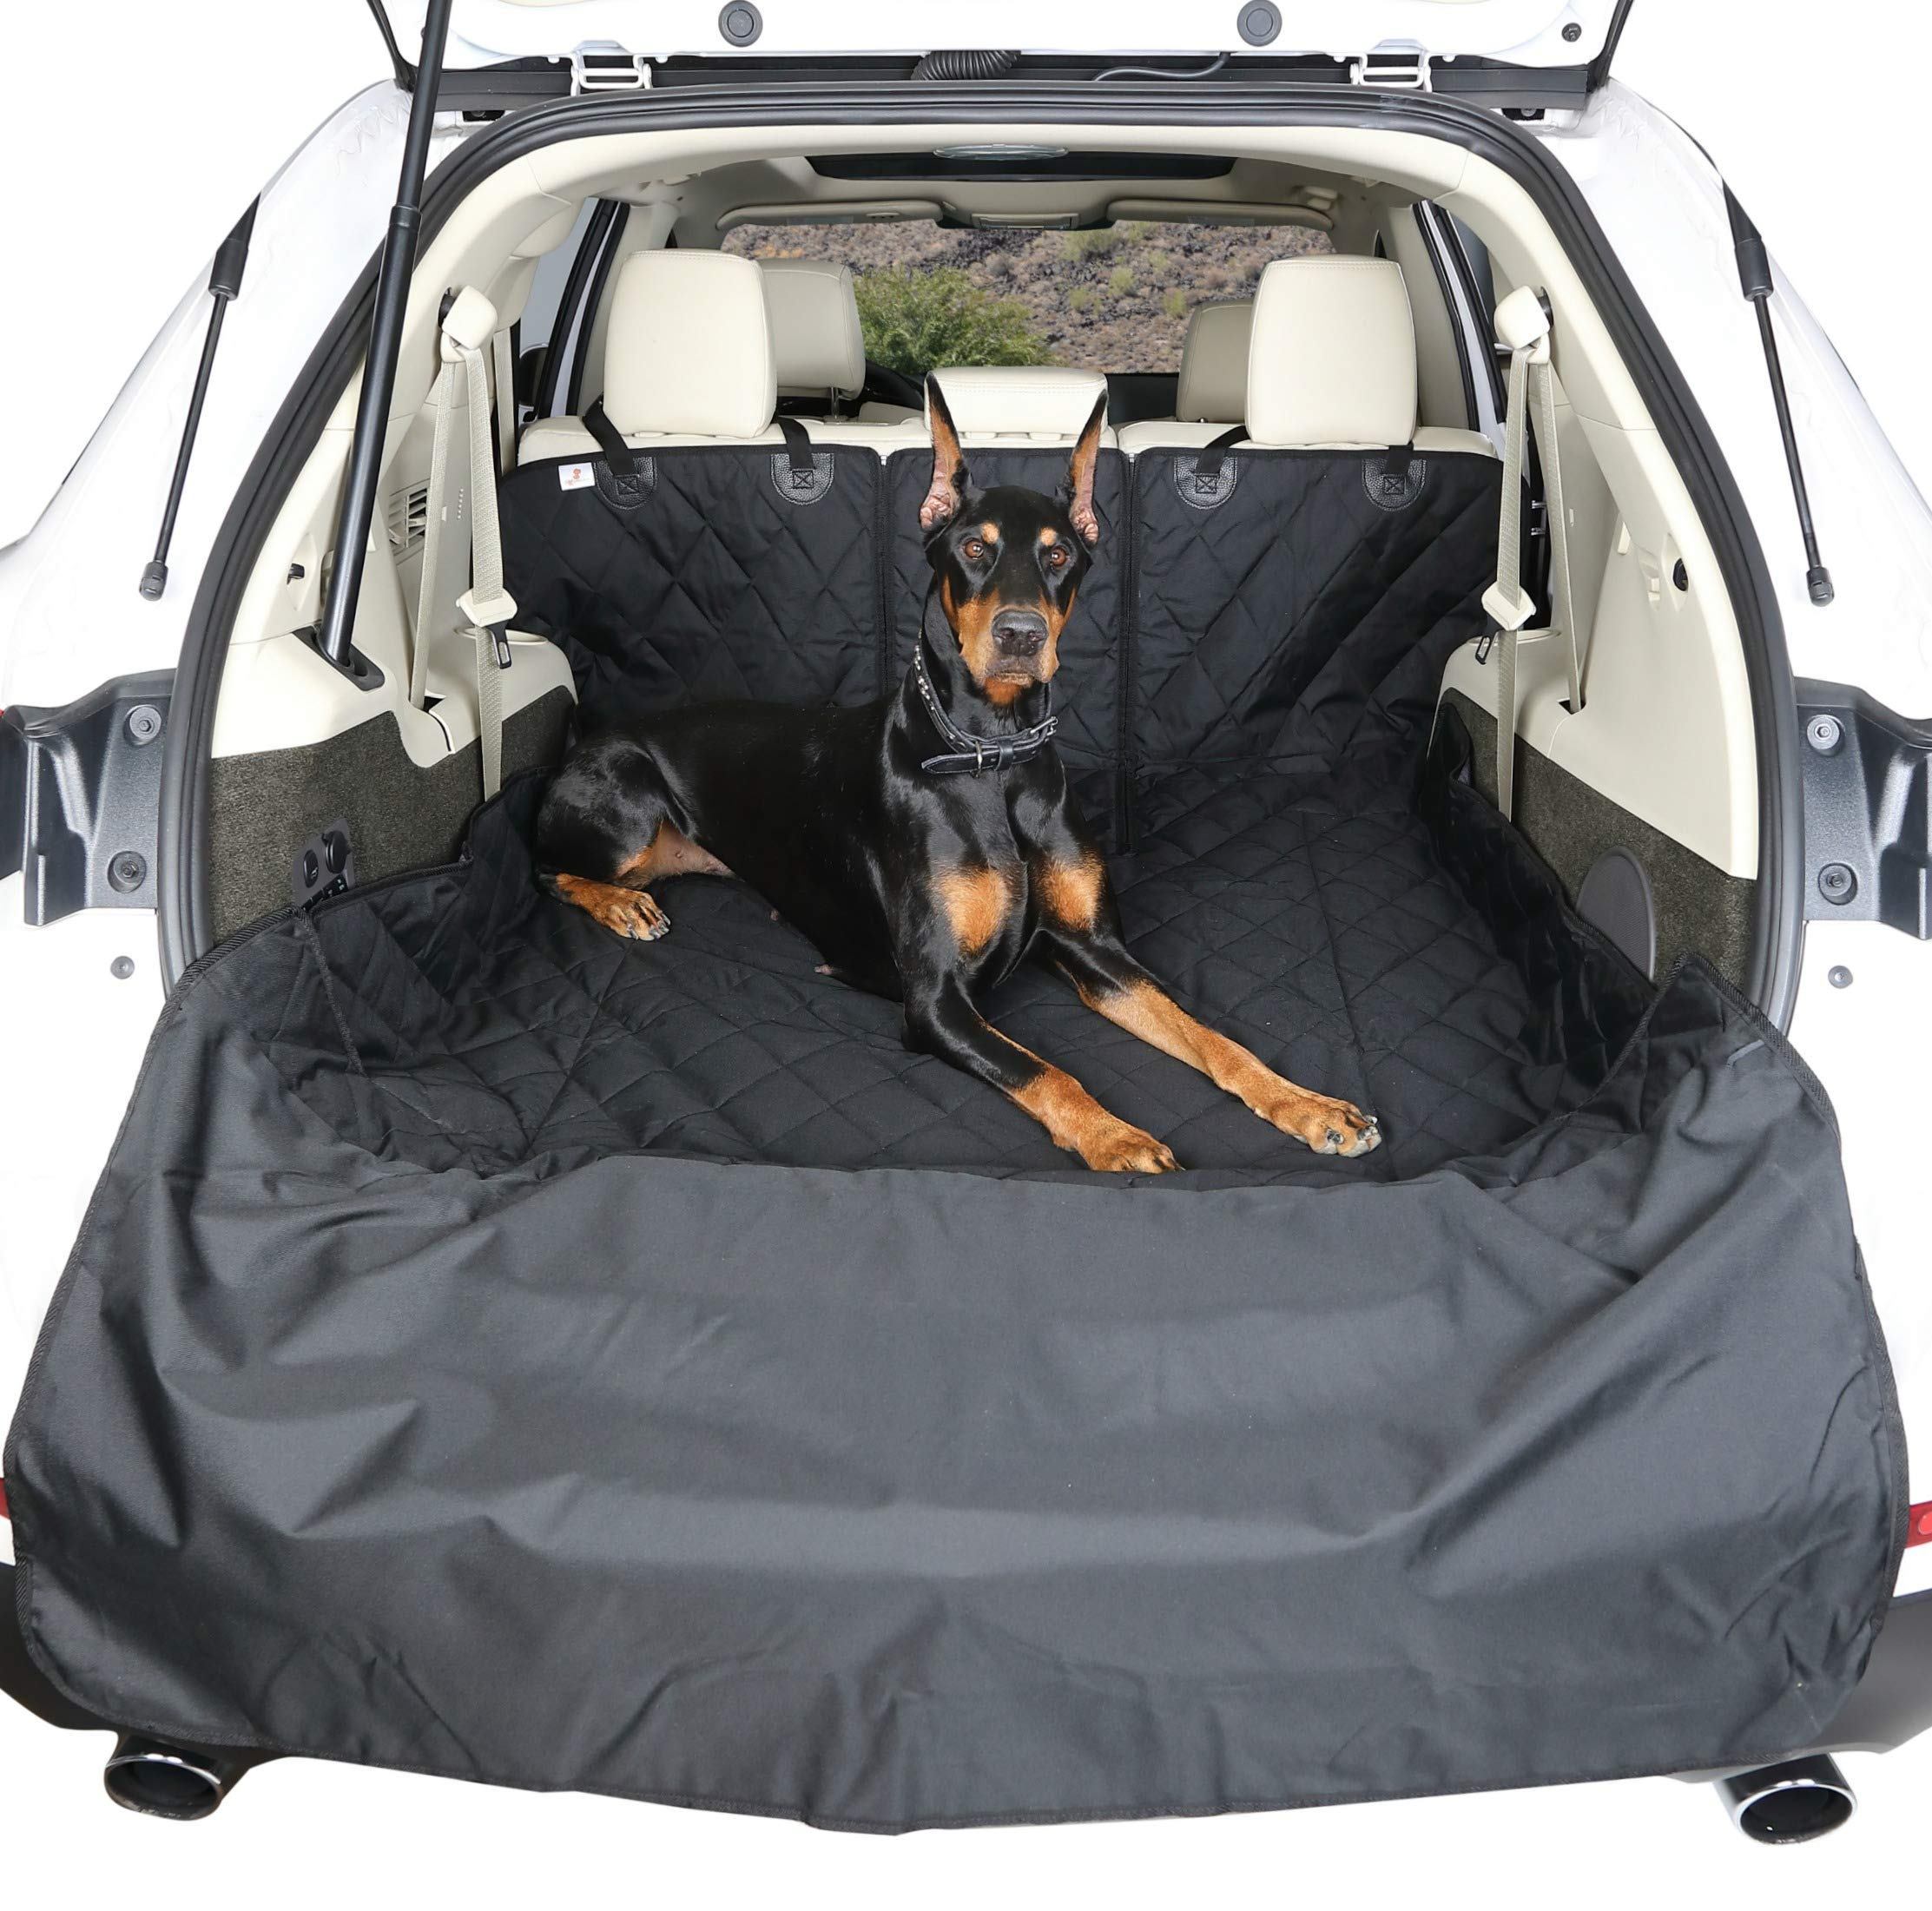 4Knines SUV Cargo Liner for Fold Down Seats - 60/40 Split and armrest Pass-Through fold Down Compatible - Black Extra Large - USA Based Company by 4Knines (Image #3)